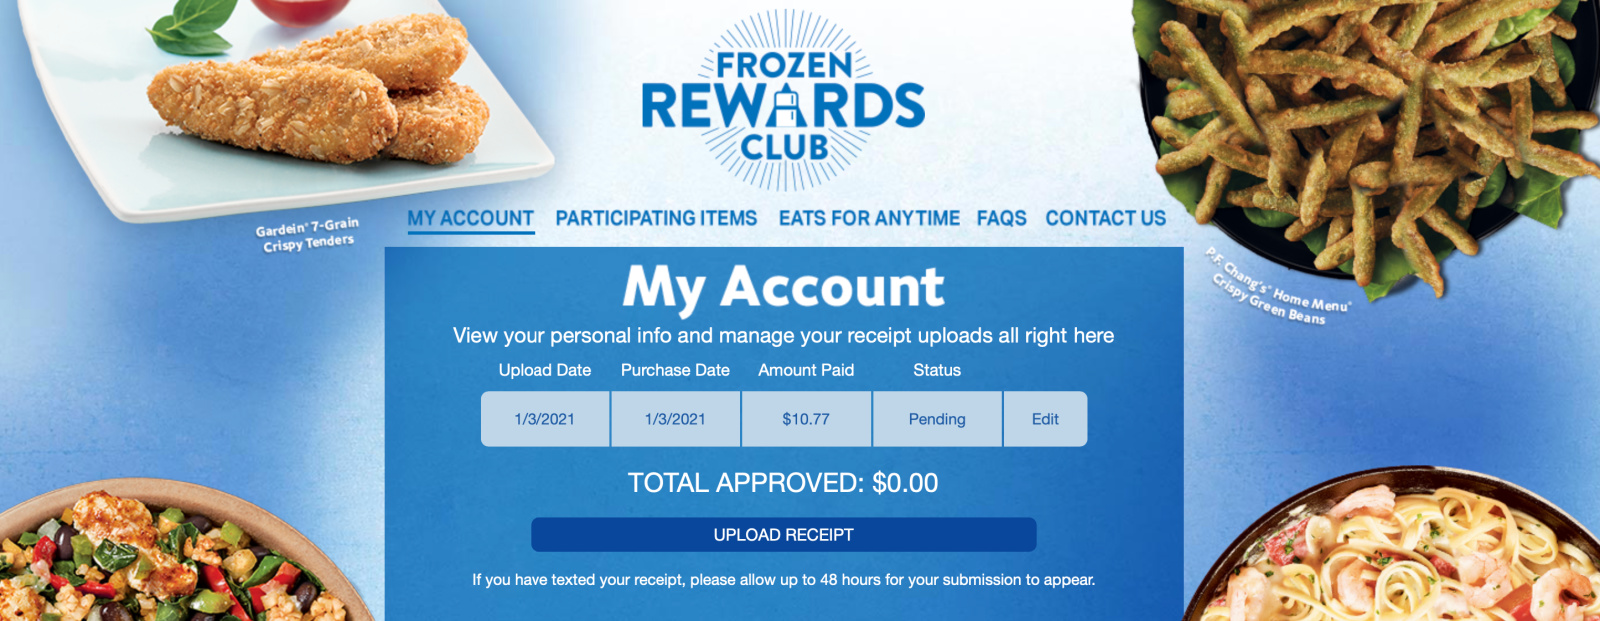 The Frozen Rewards Club Has Returned For 2021 - Earn Up To $50 In Publix Gift Cards! on I Heart Publix